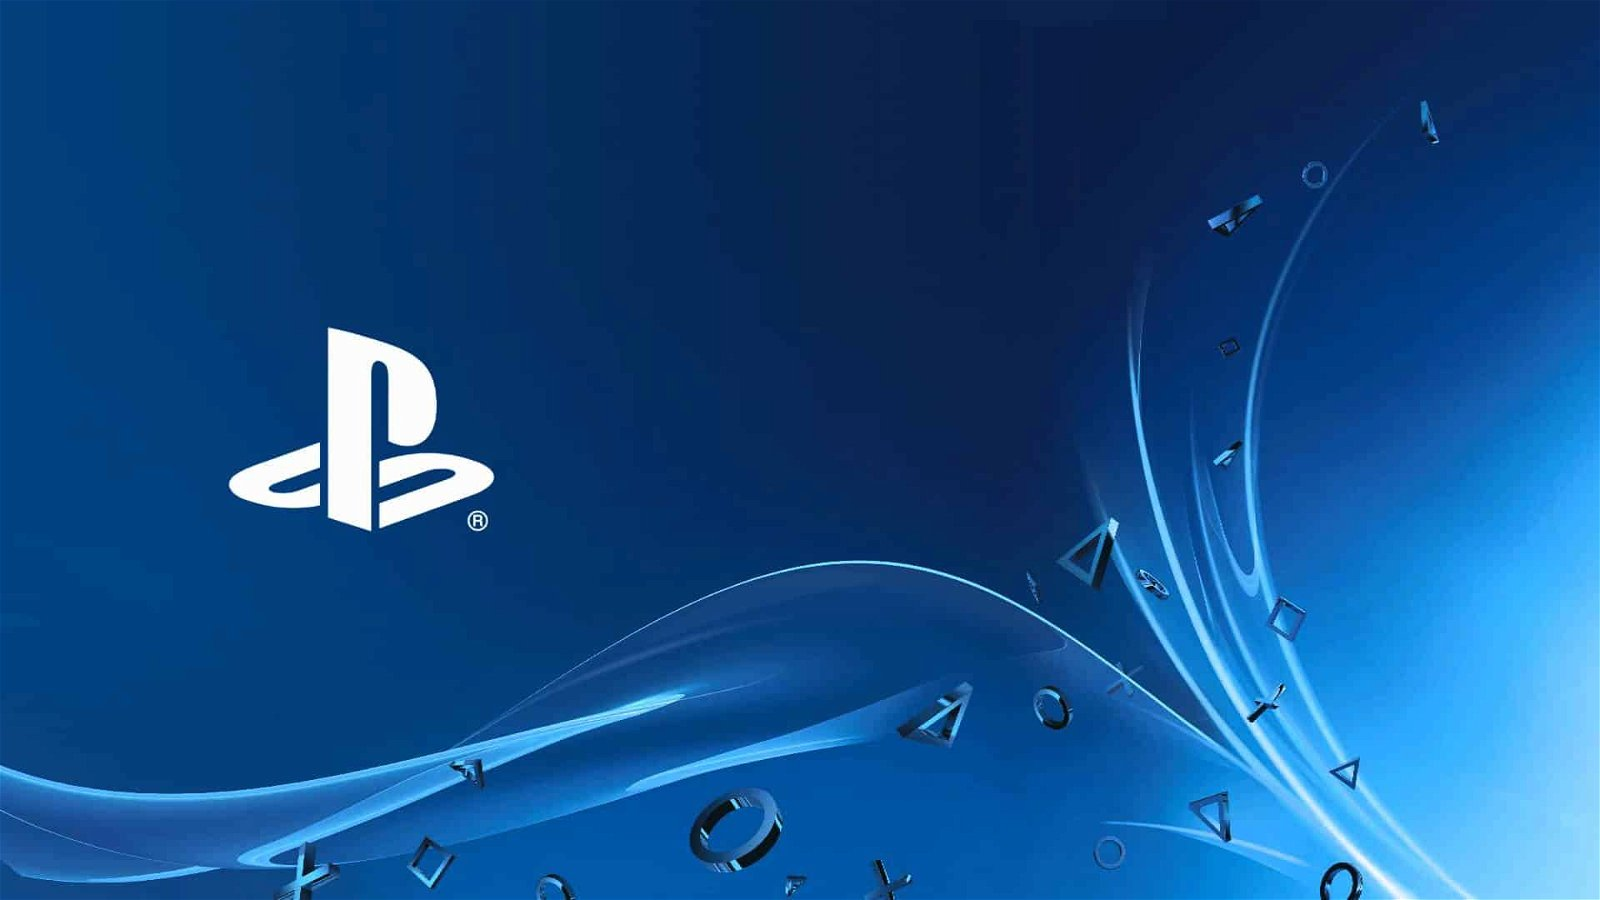 PS5: What Fans should expect from the Future of PlayStation